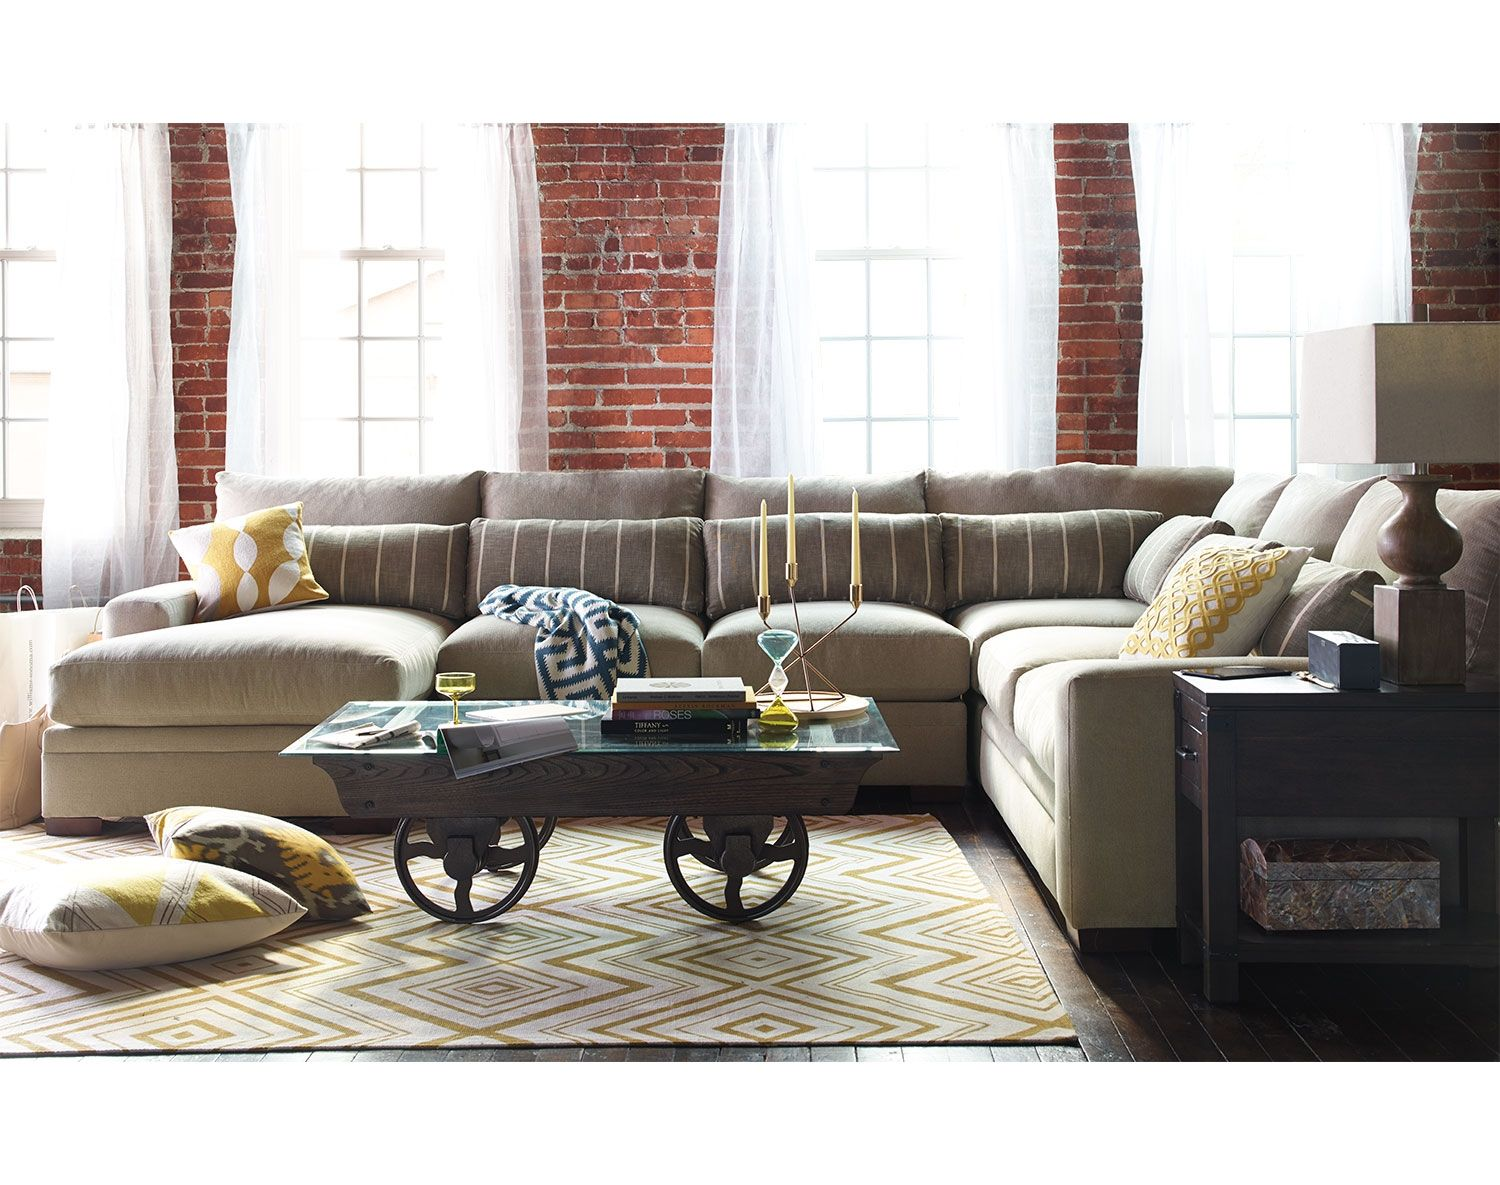 Living Room Design With Sectional Sofa Fair My Favorite But It Cost $2999 The Ventura Collection 2018